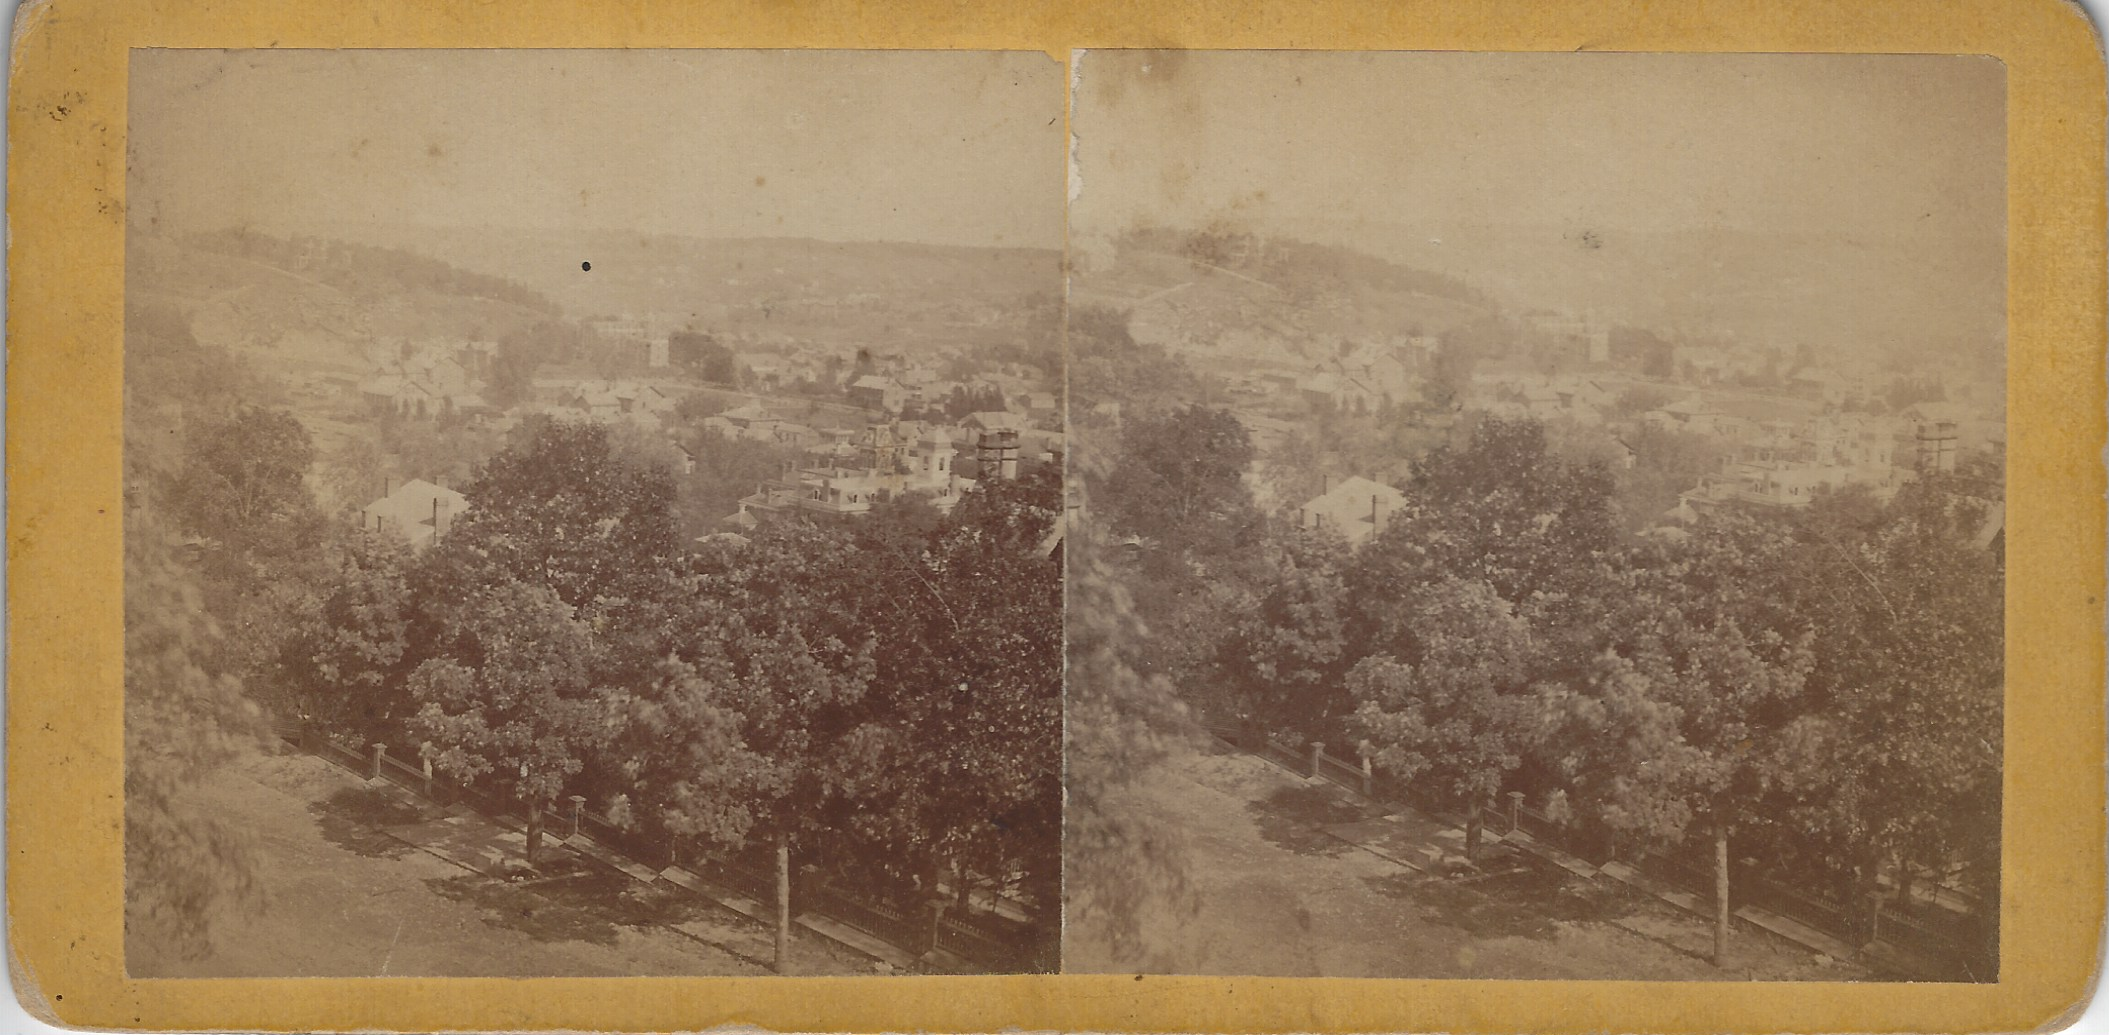 LJTP 100.315 - S. Root - From Panoramic series looking North - c1880